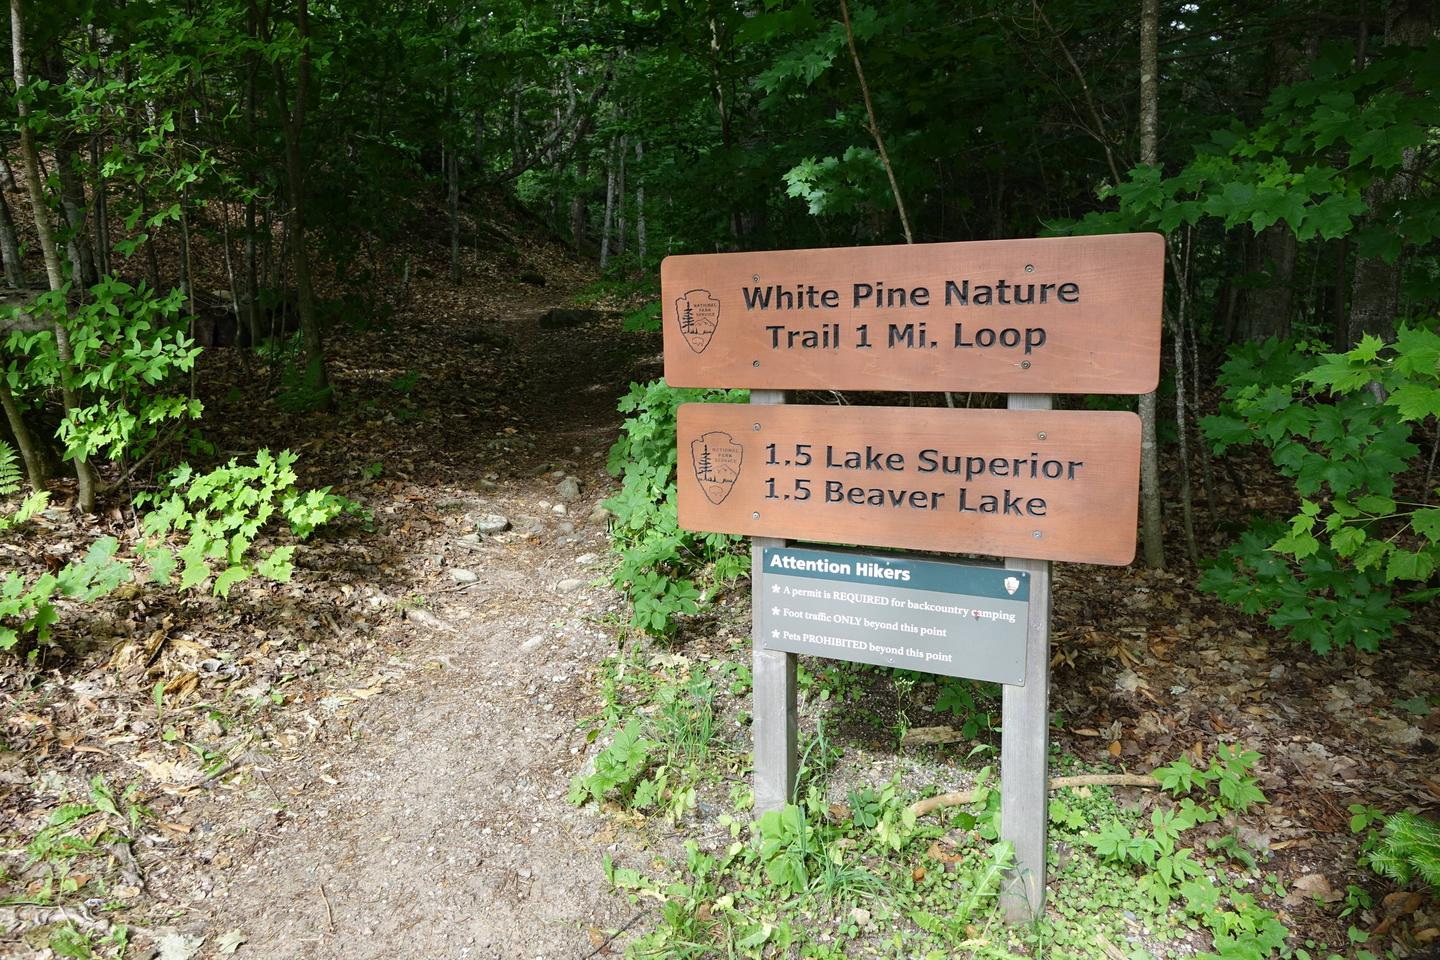 White Pine trail access from campground